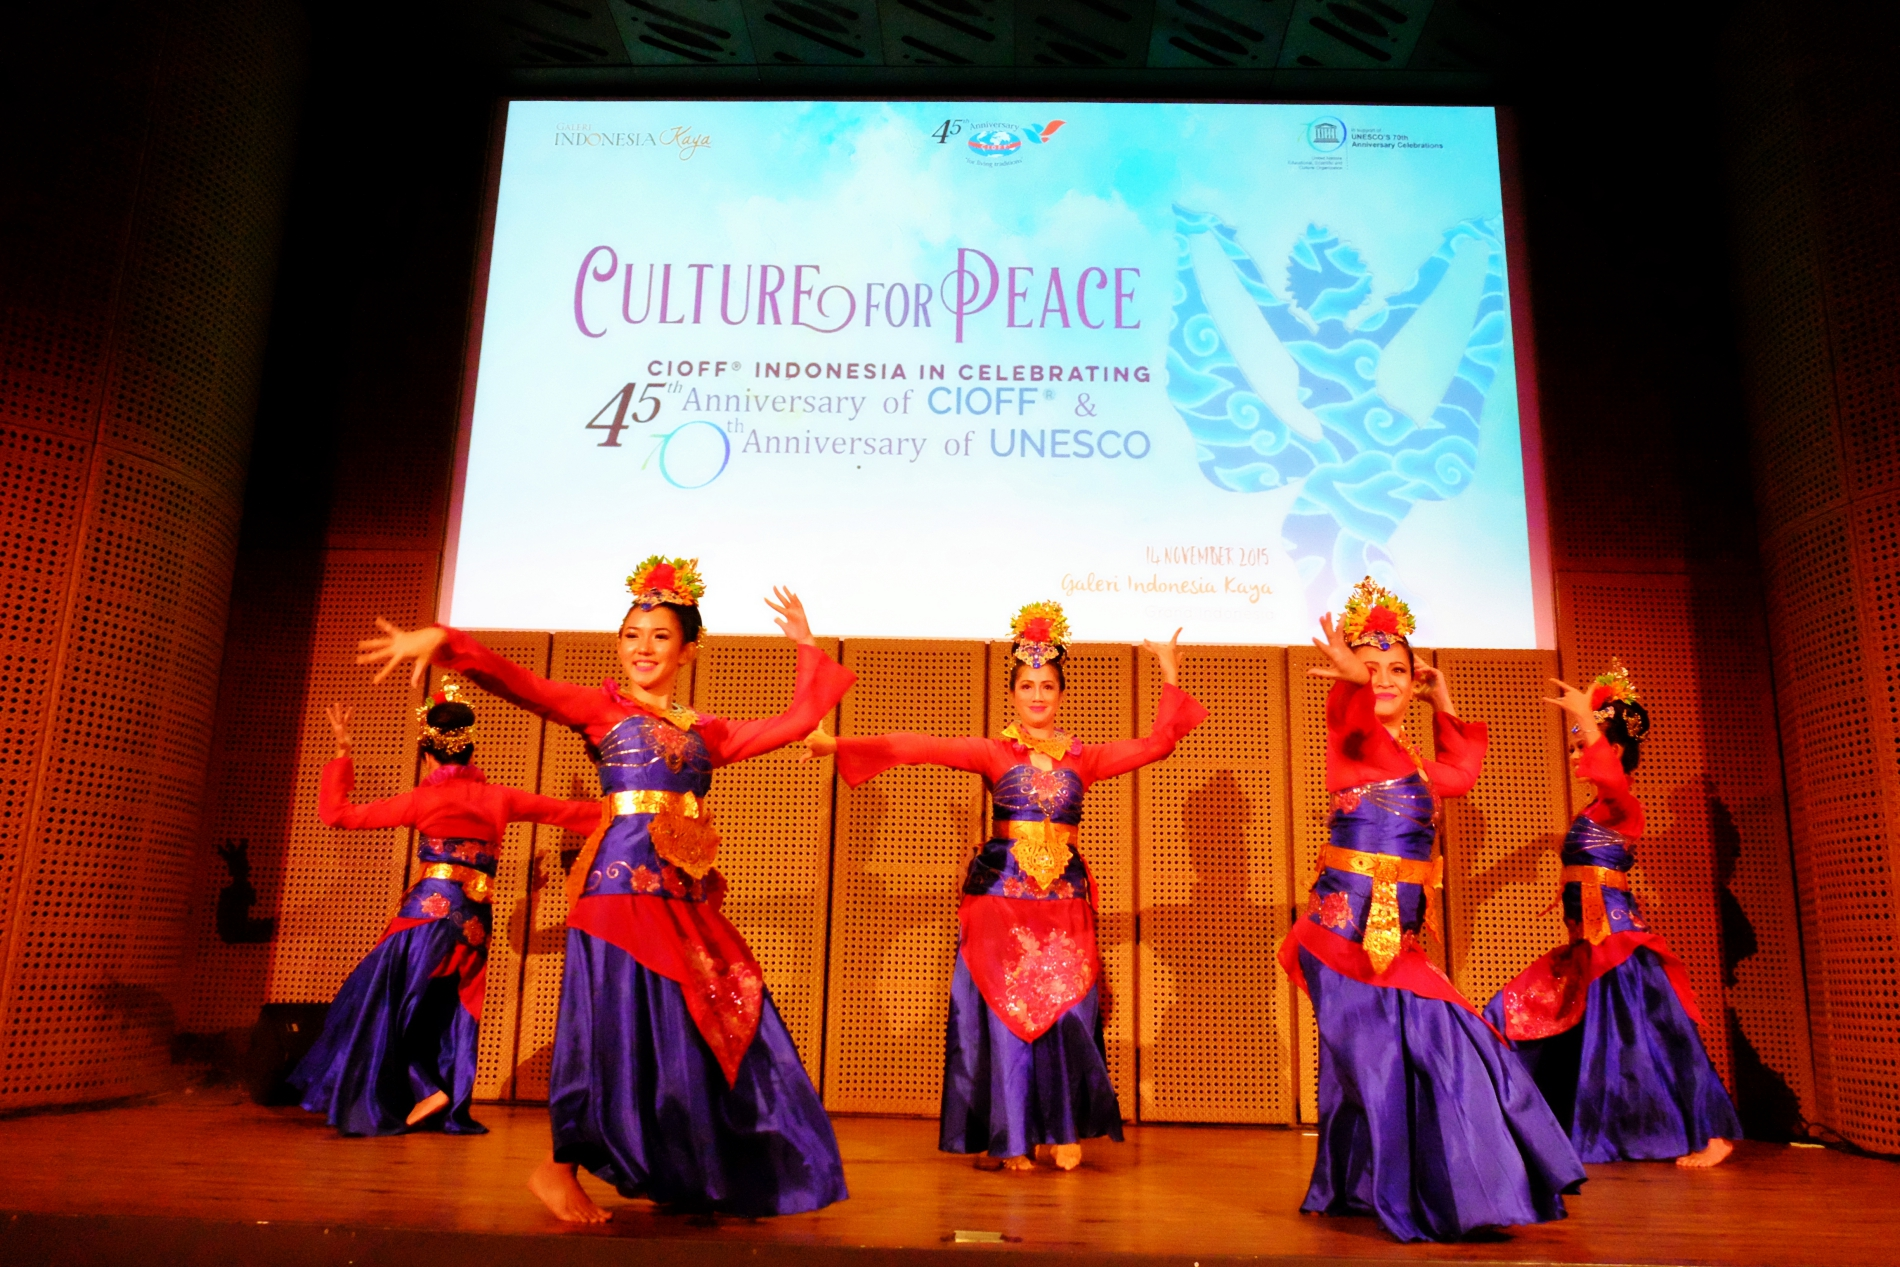 Culture for Peace